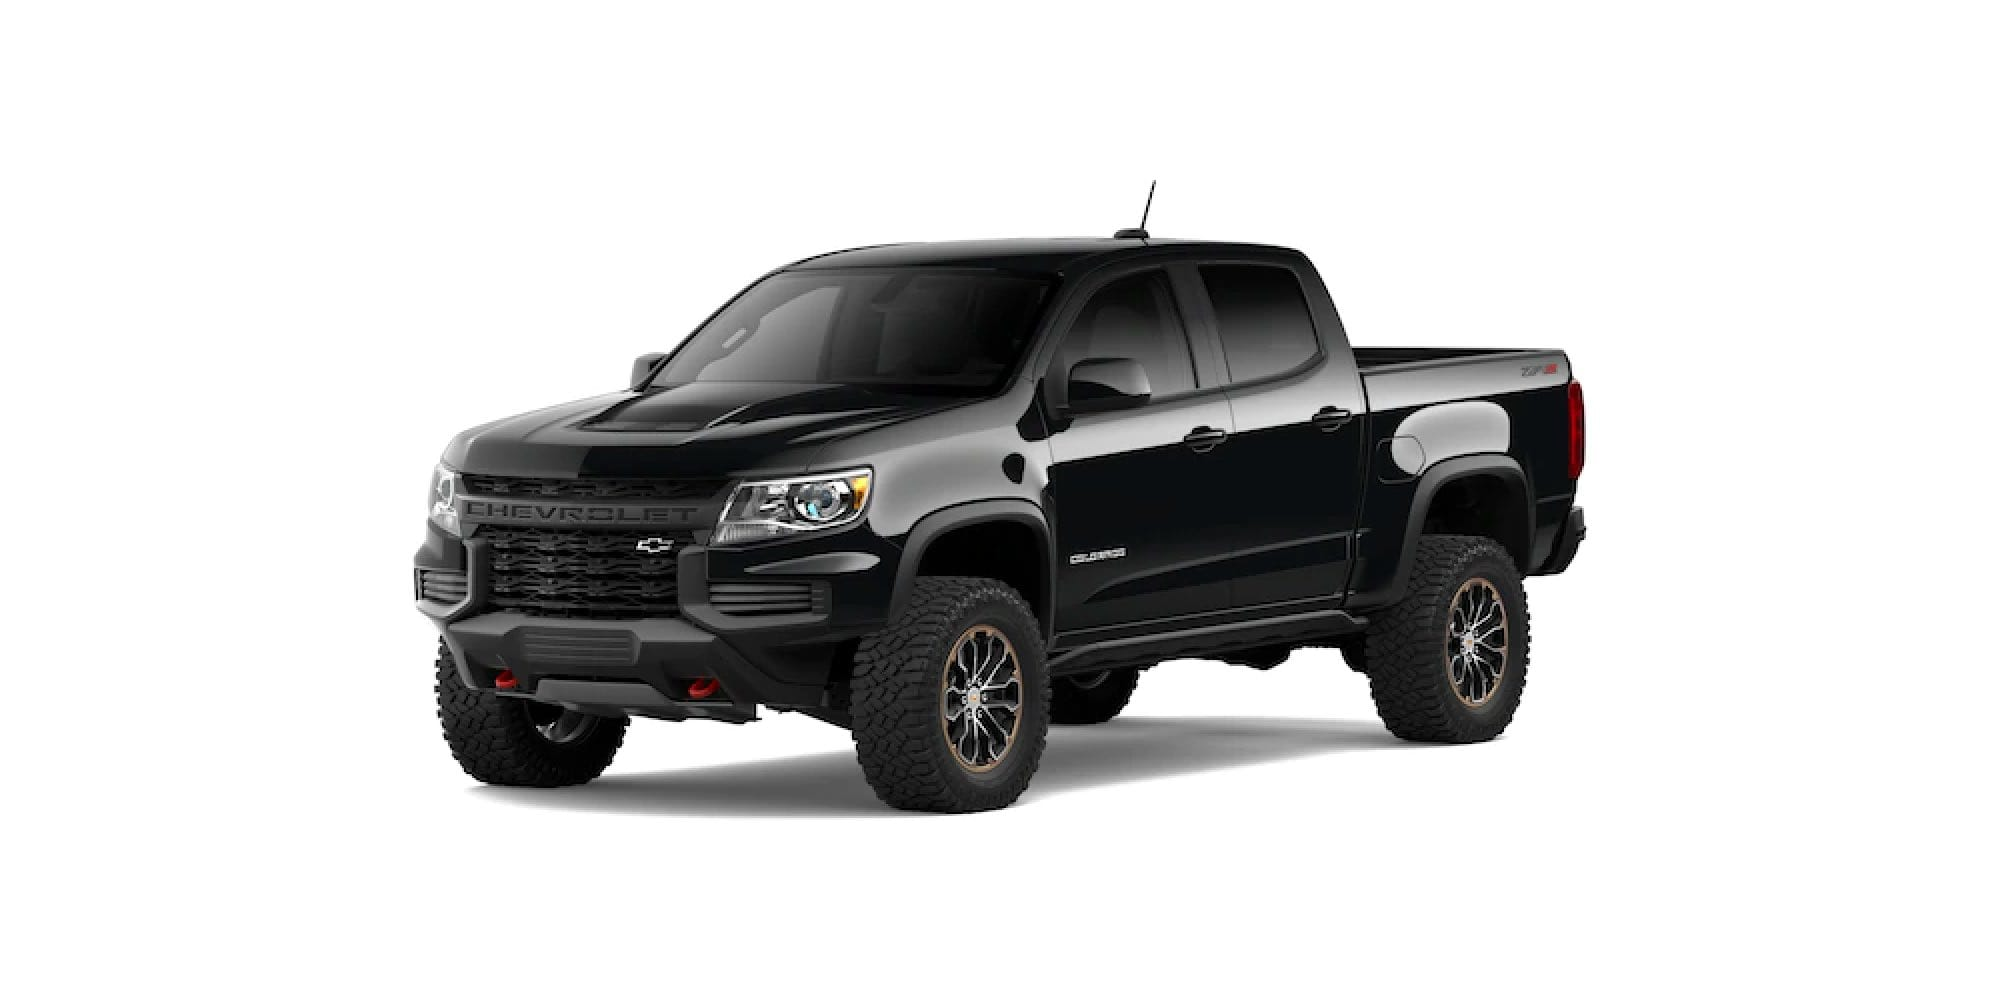 2021 Chevy Colorado in Black